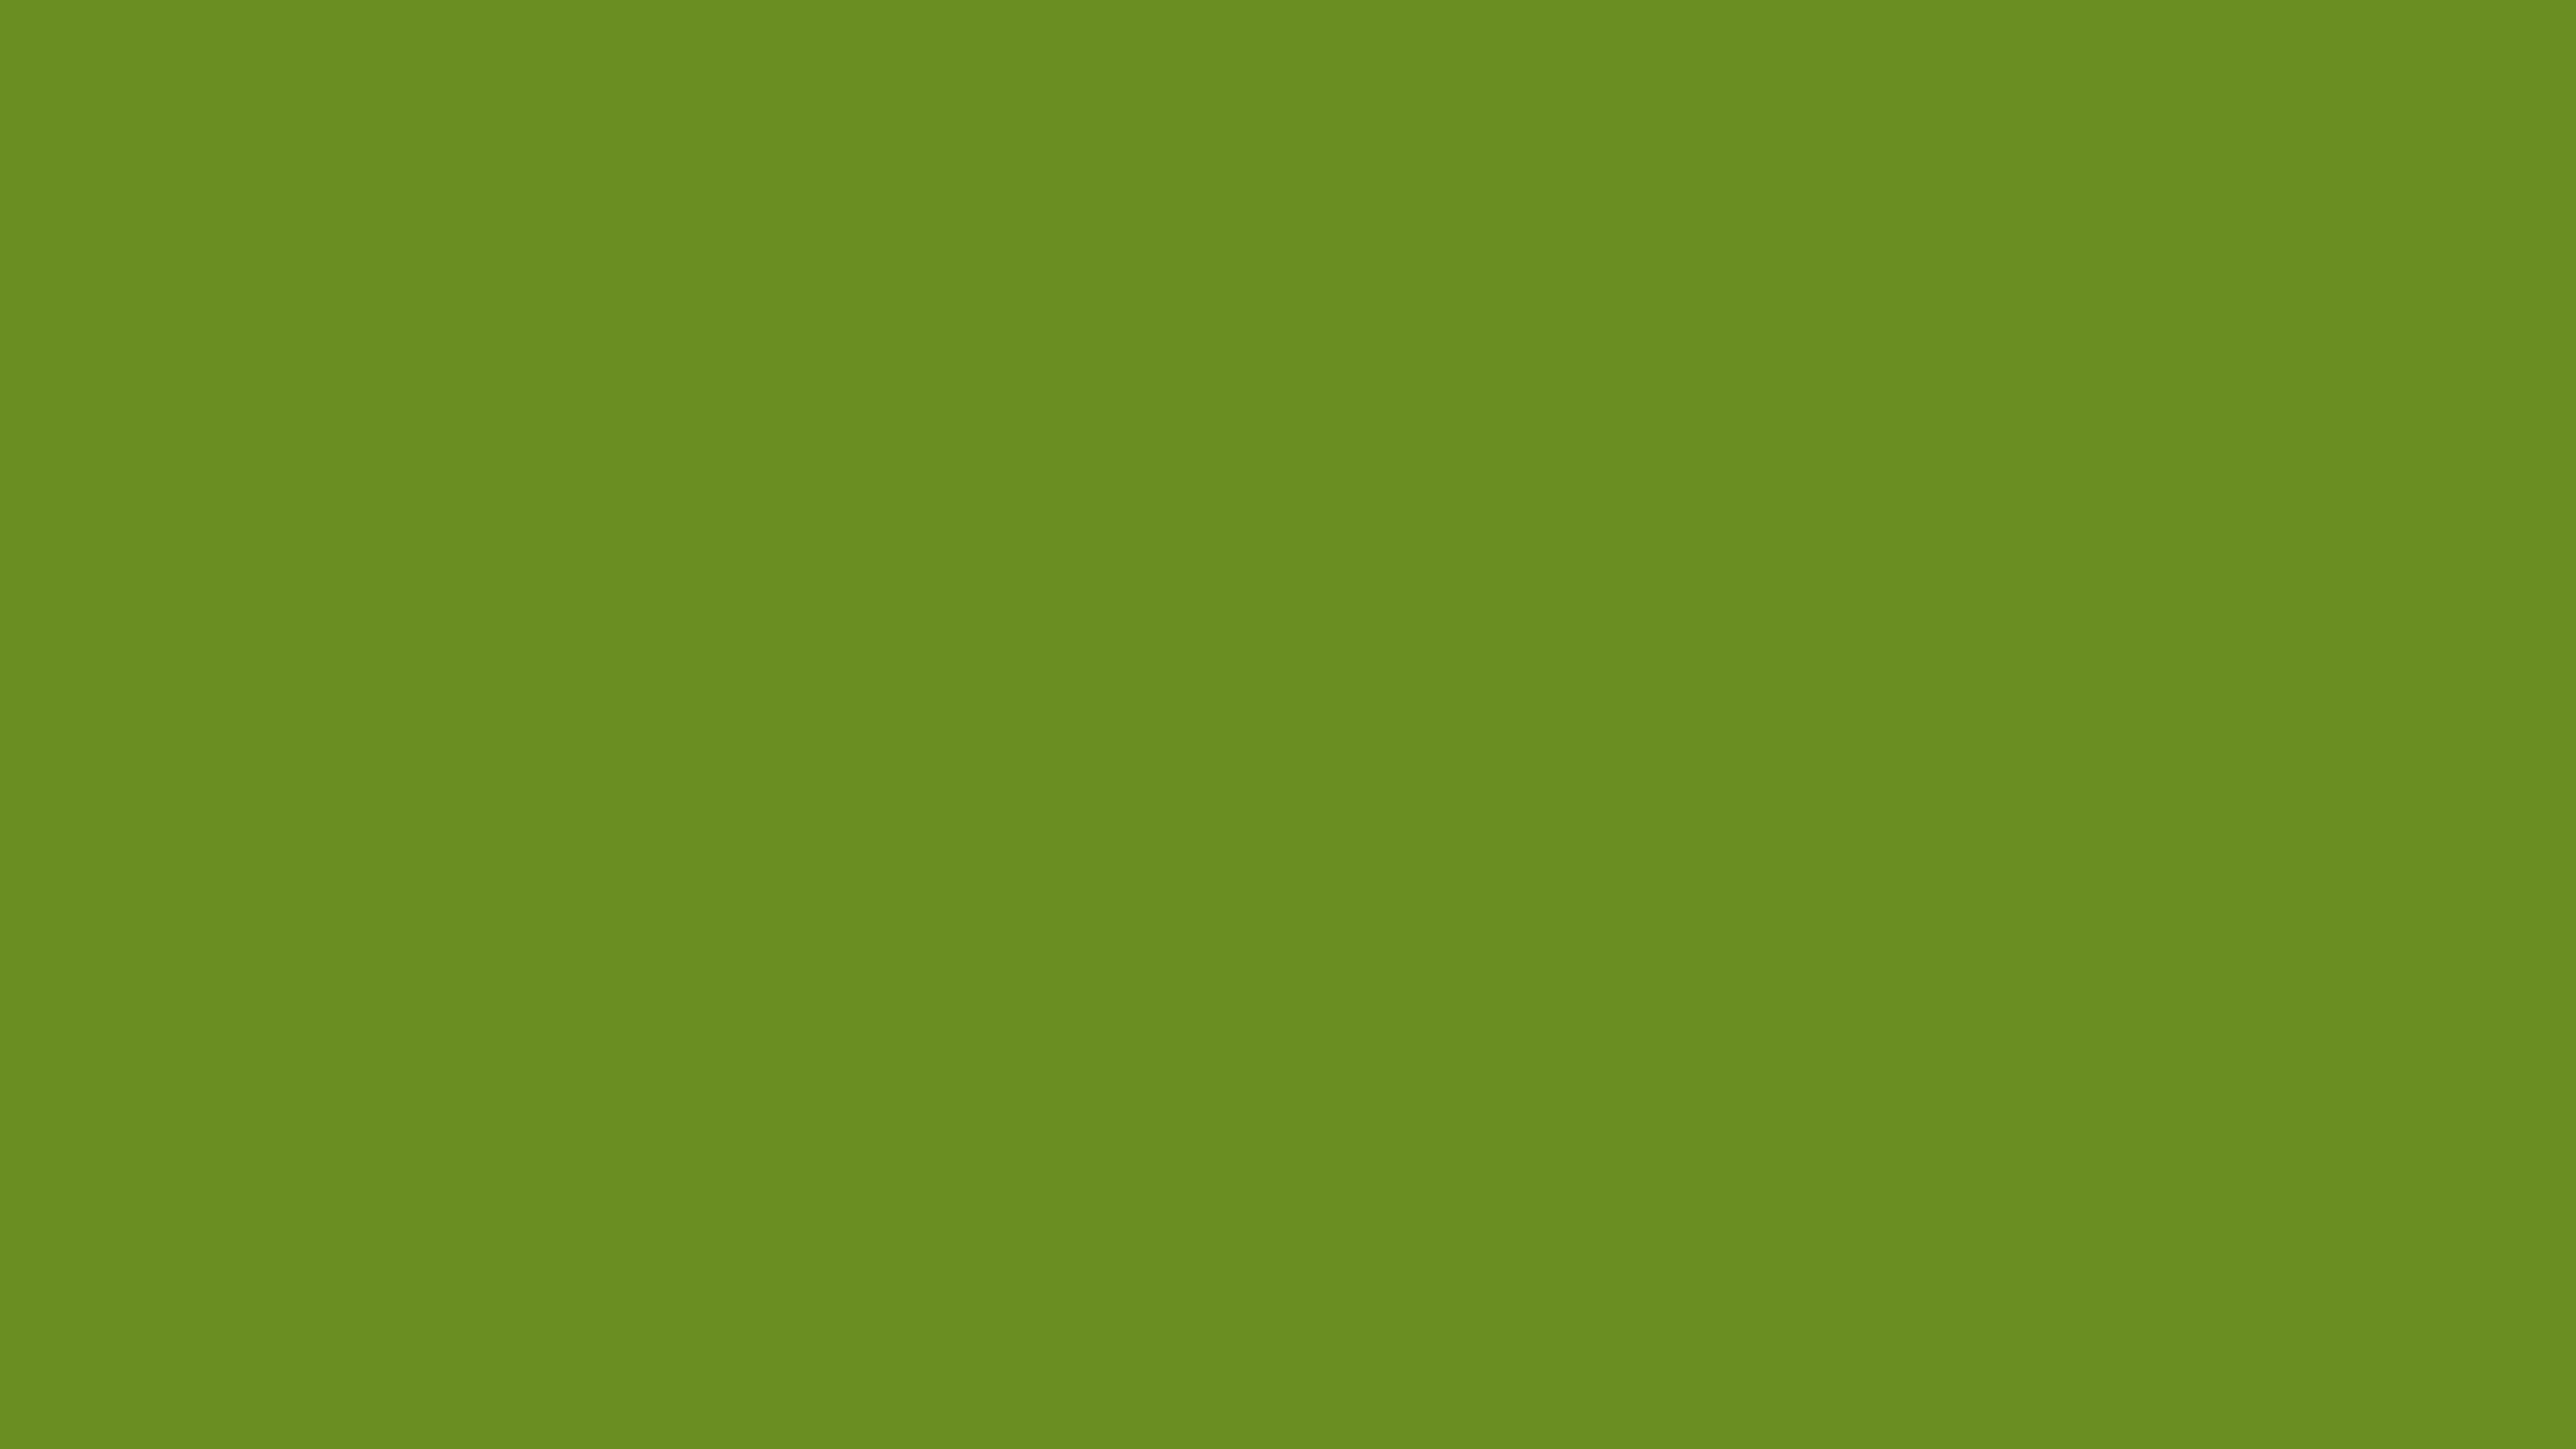 3840x2160 Olive Drab Number Three Solid Color Background